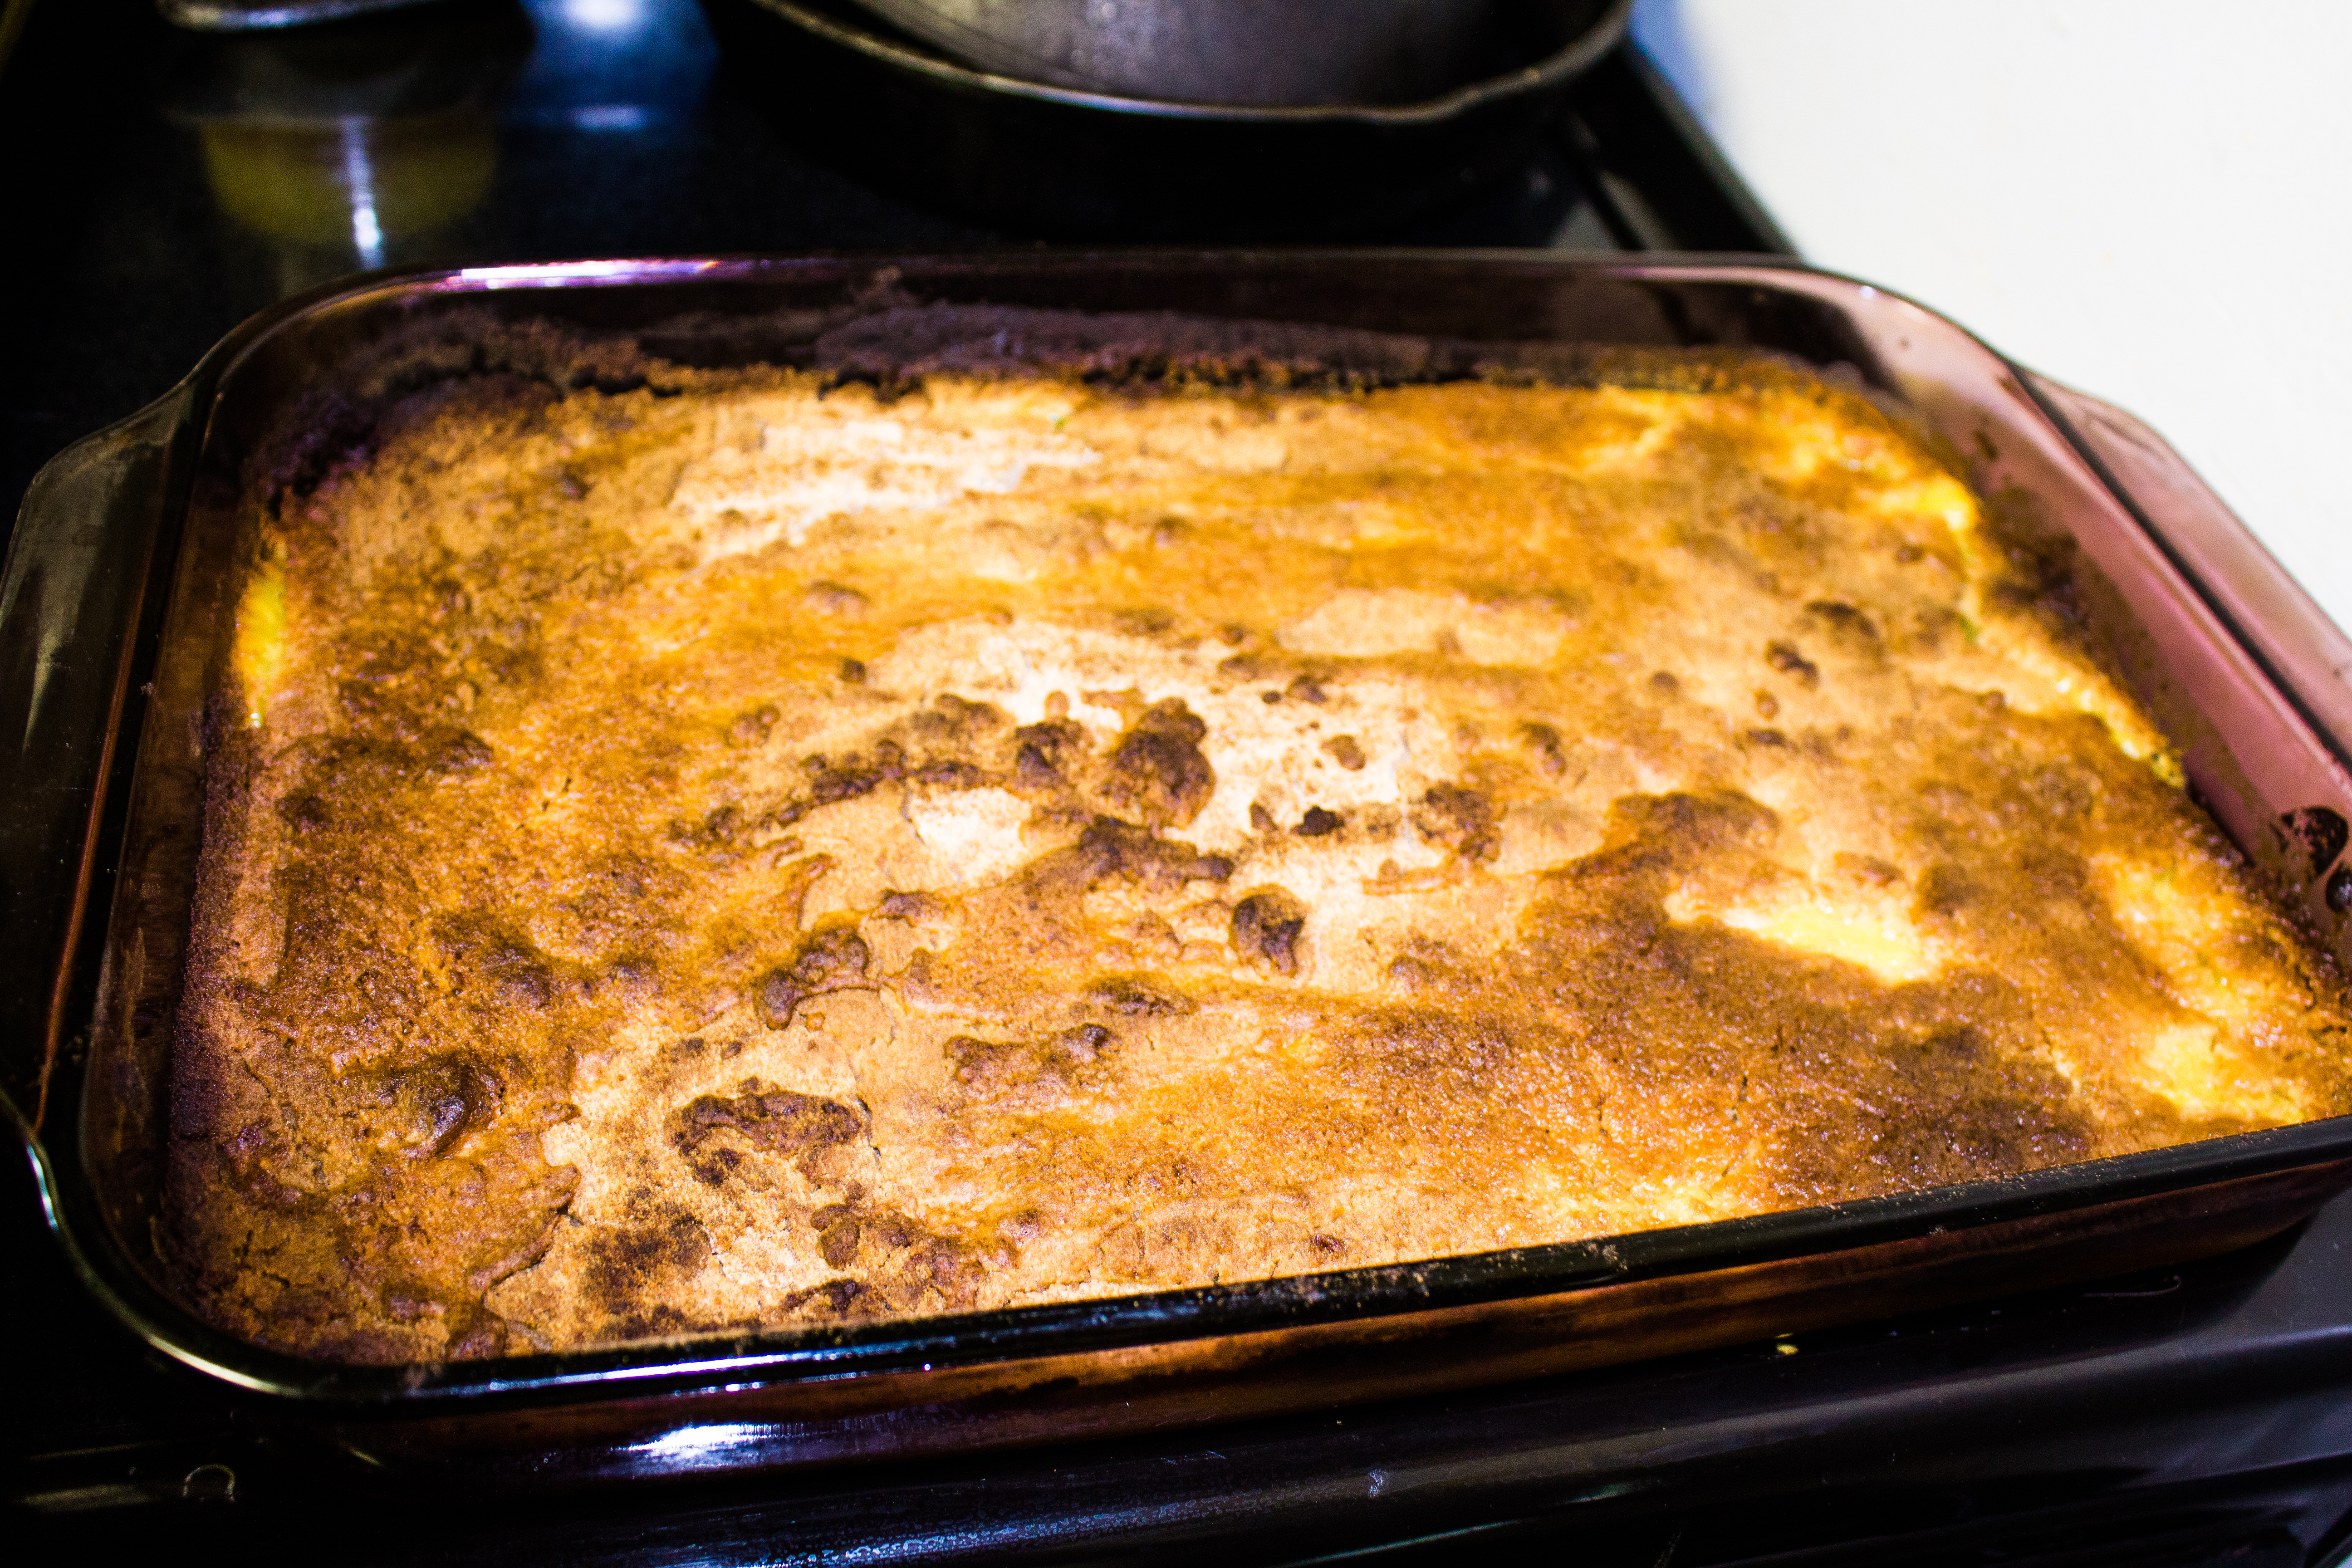 Looking for an easy lemon dessert? This lemon dump cake it very easy to make is inexpensive and tastes delicious and rich.